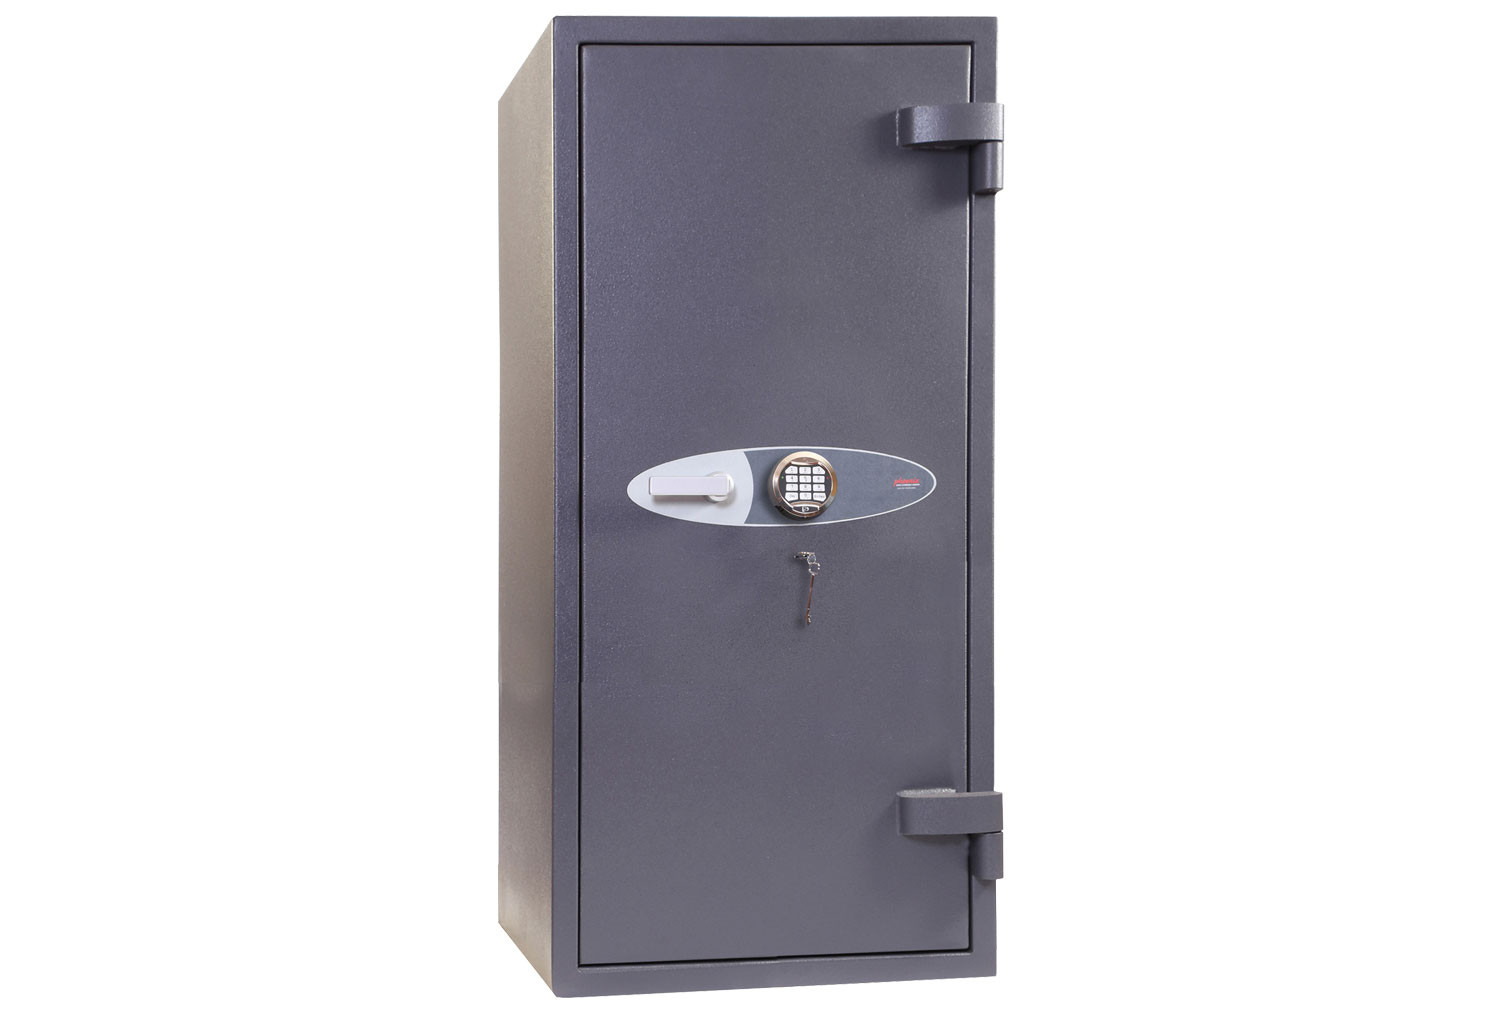 Phoenix Cosmos HS9075E High Security Safe With Electronic Lock (342ltrs)